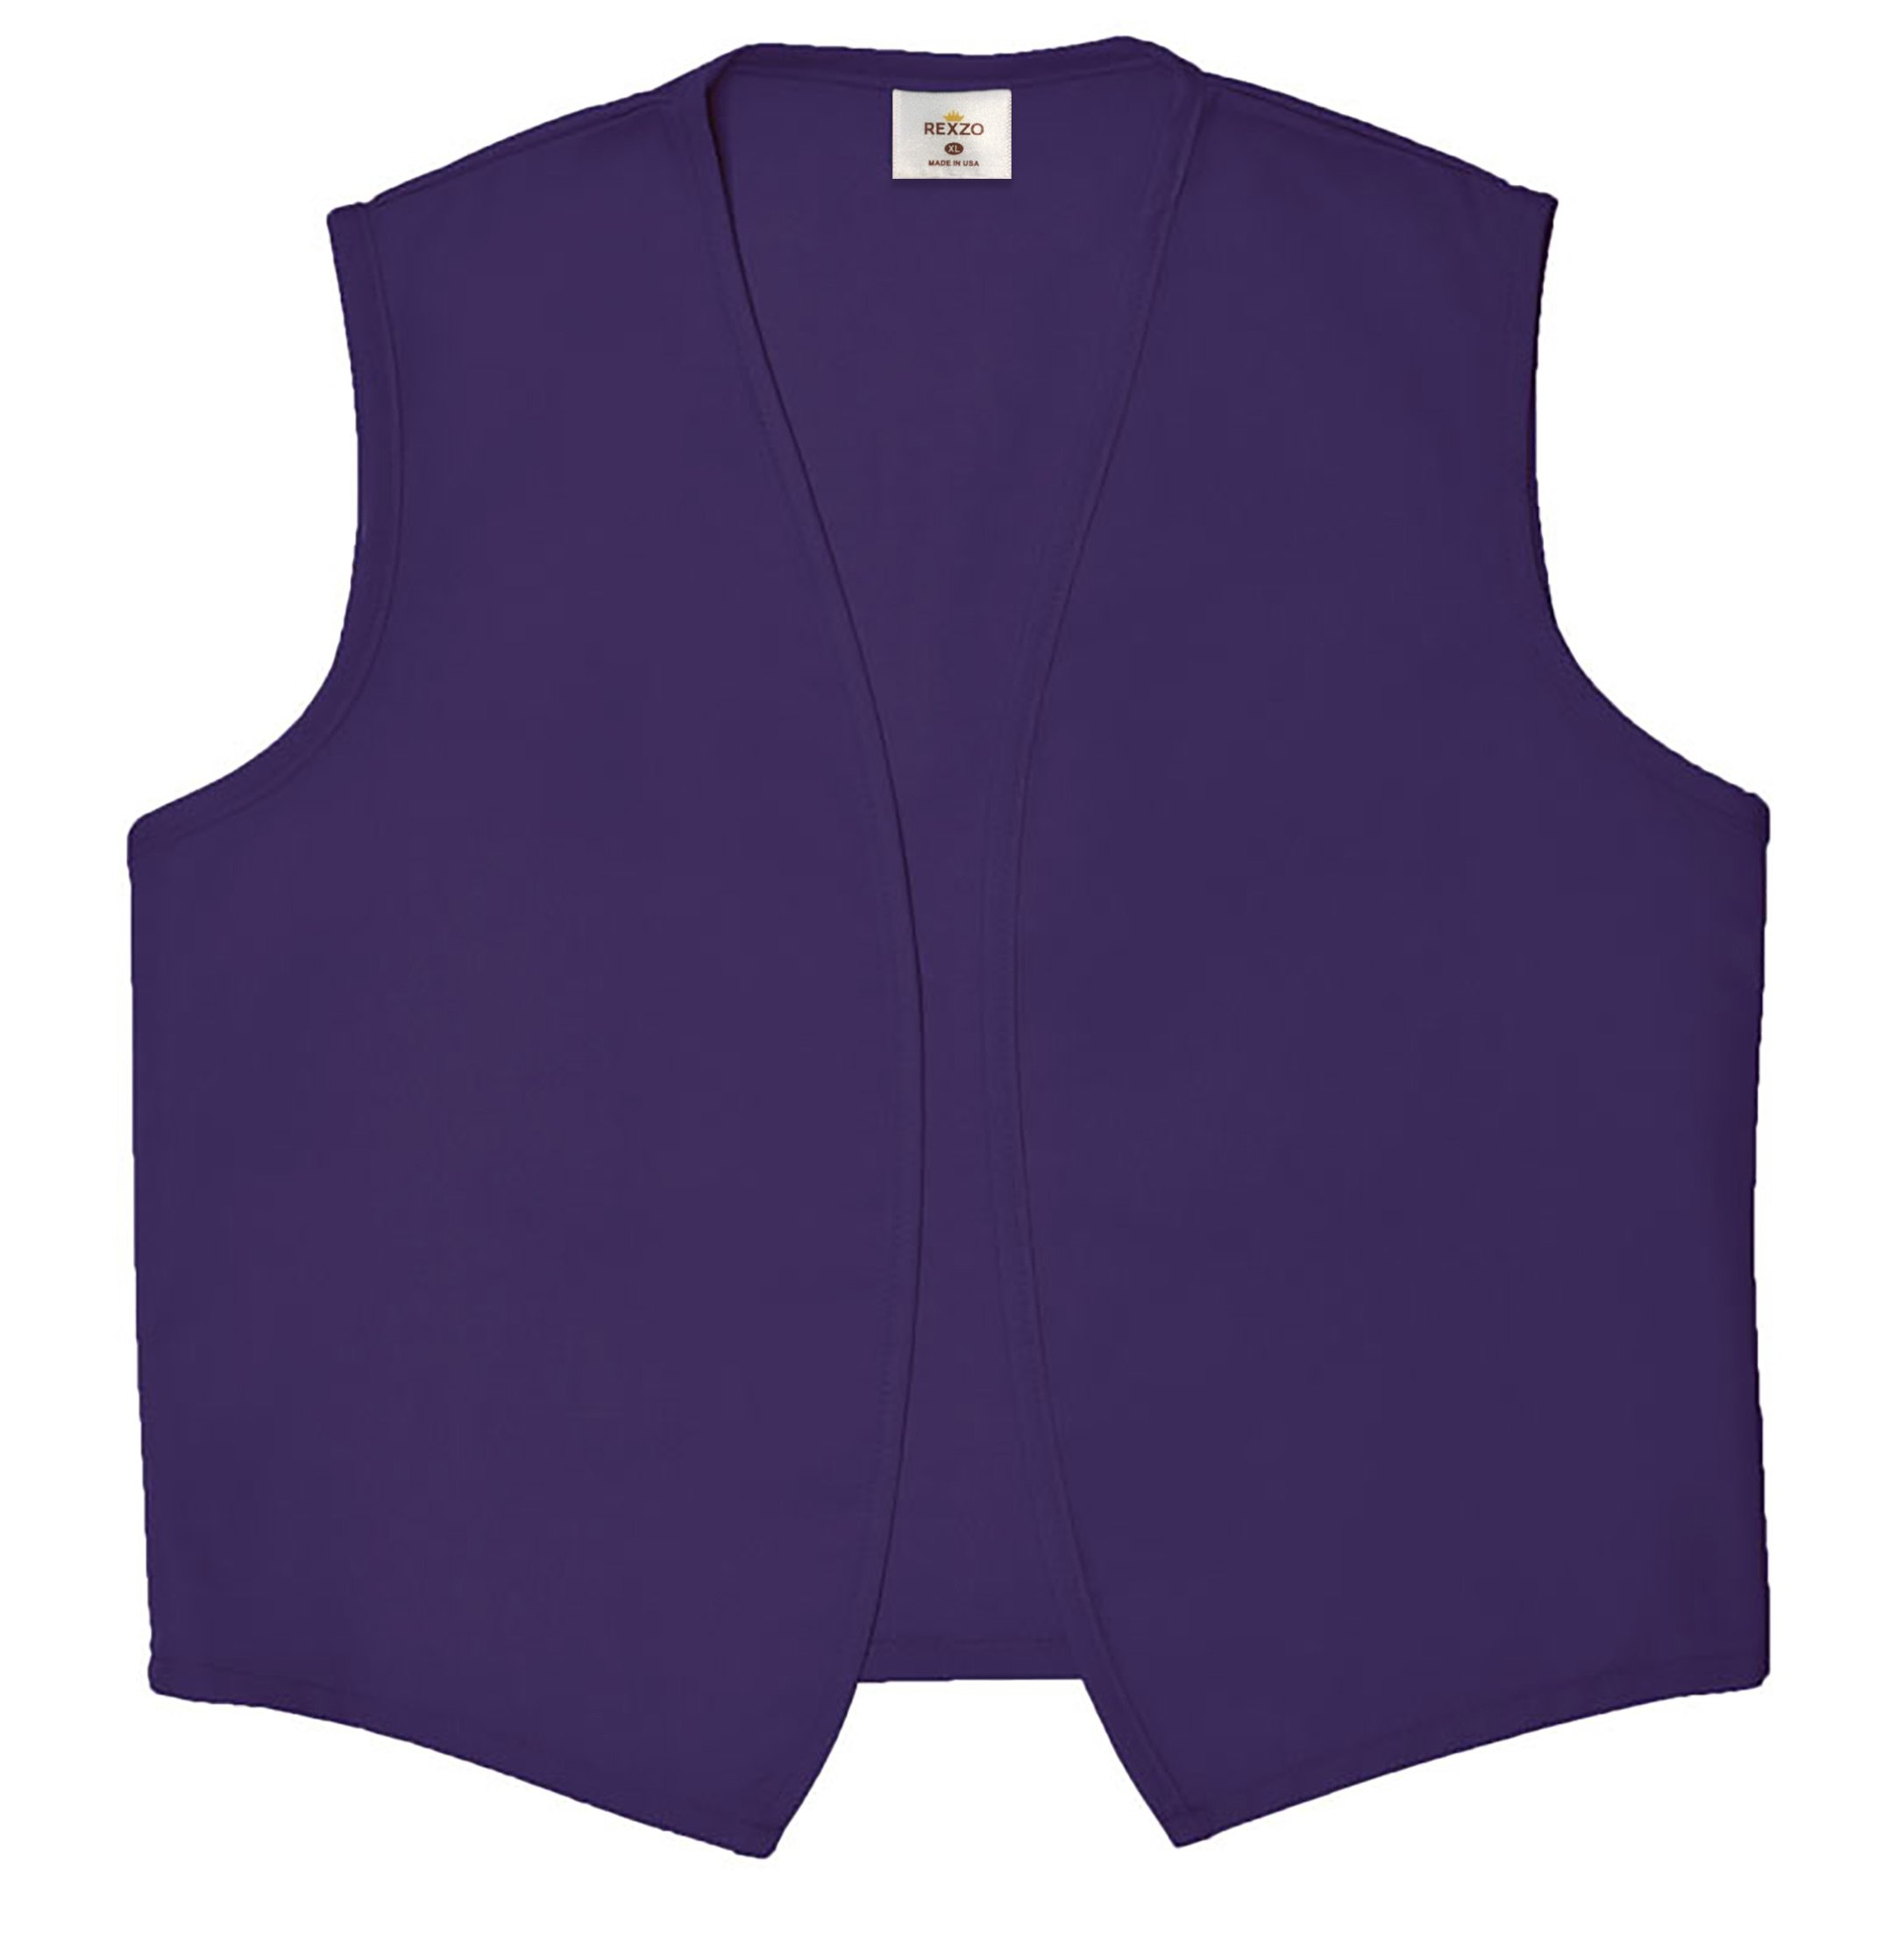 REXZO Unisex Vest No Pocket No Buttons– Made in The USA - Purple, Large